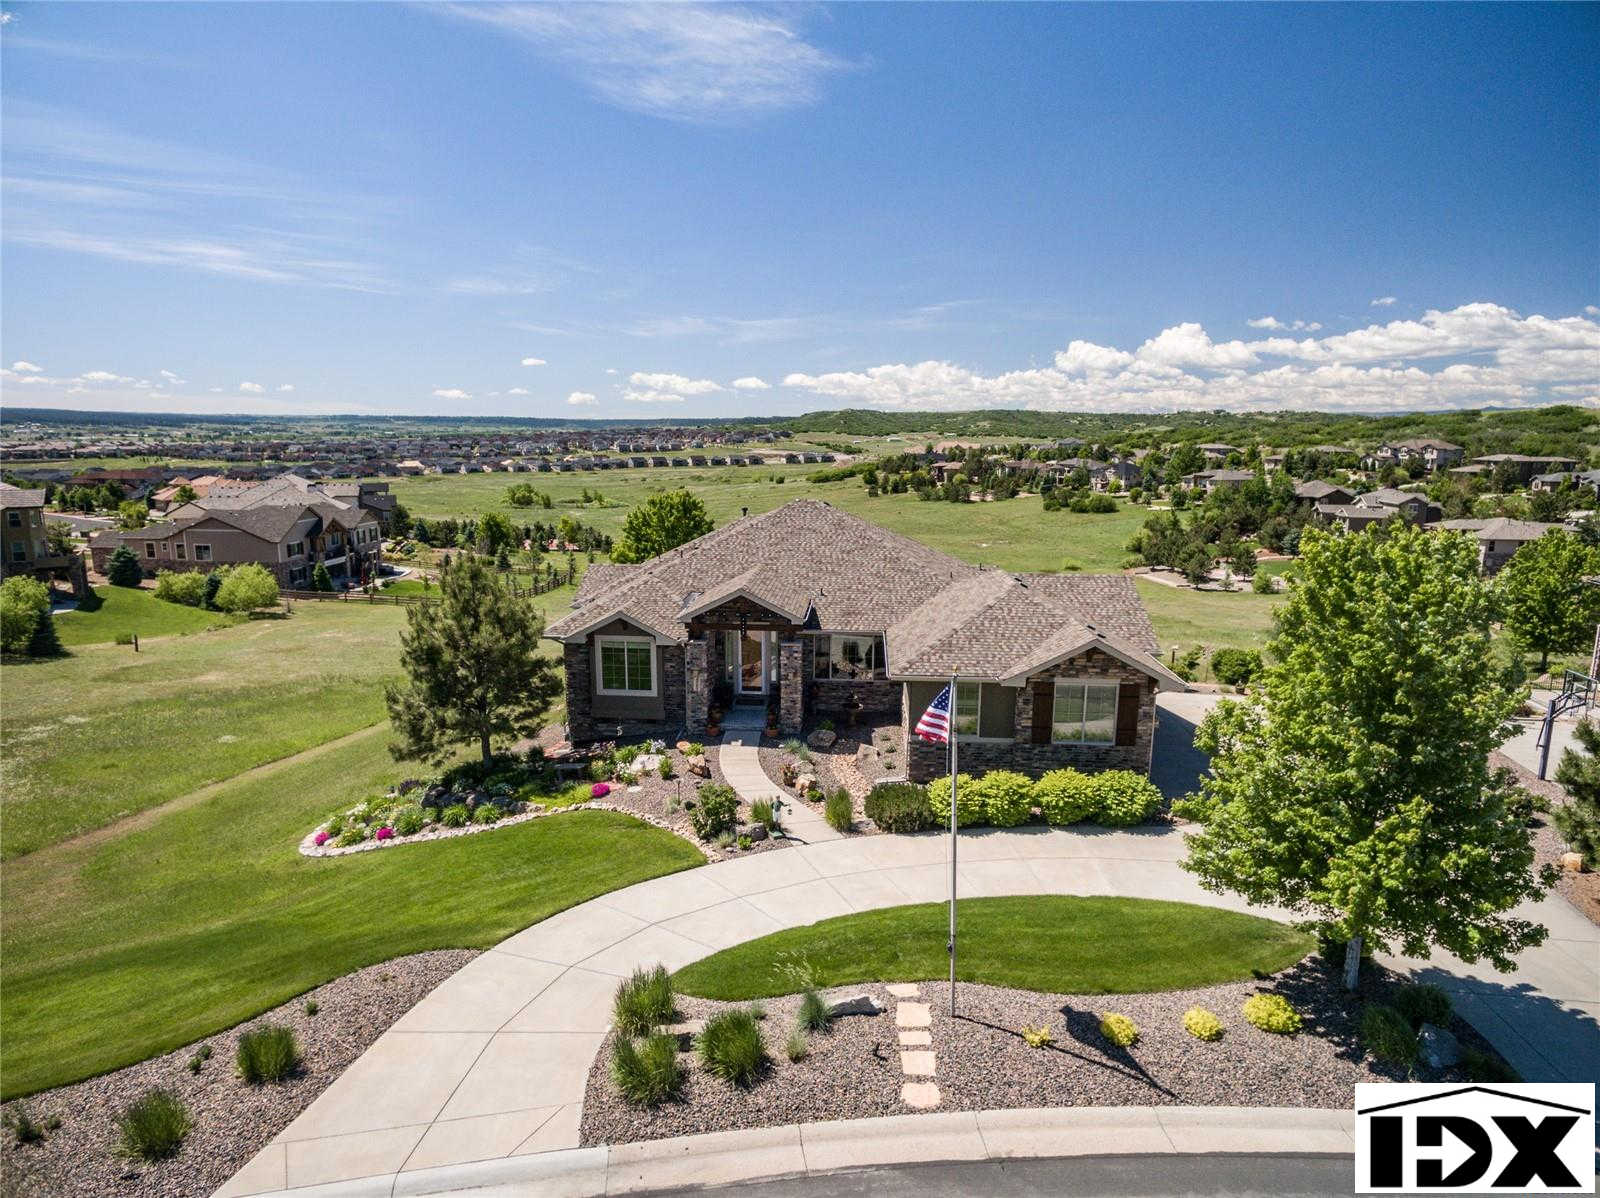 4505 Carefree Trail, Parker, CO 80134 now has a new price of $895,000!